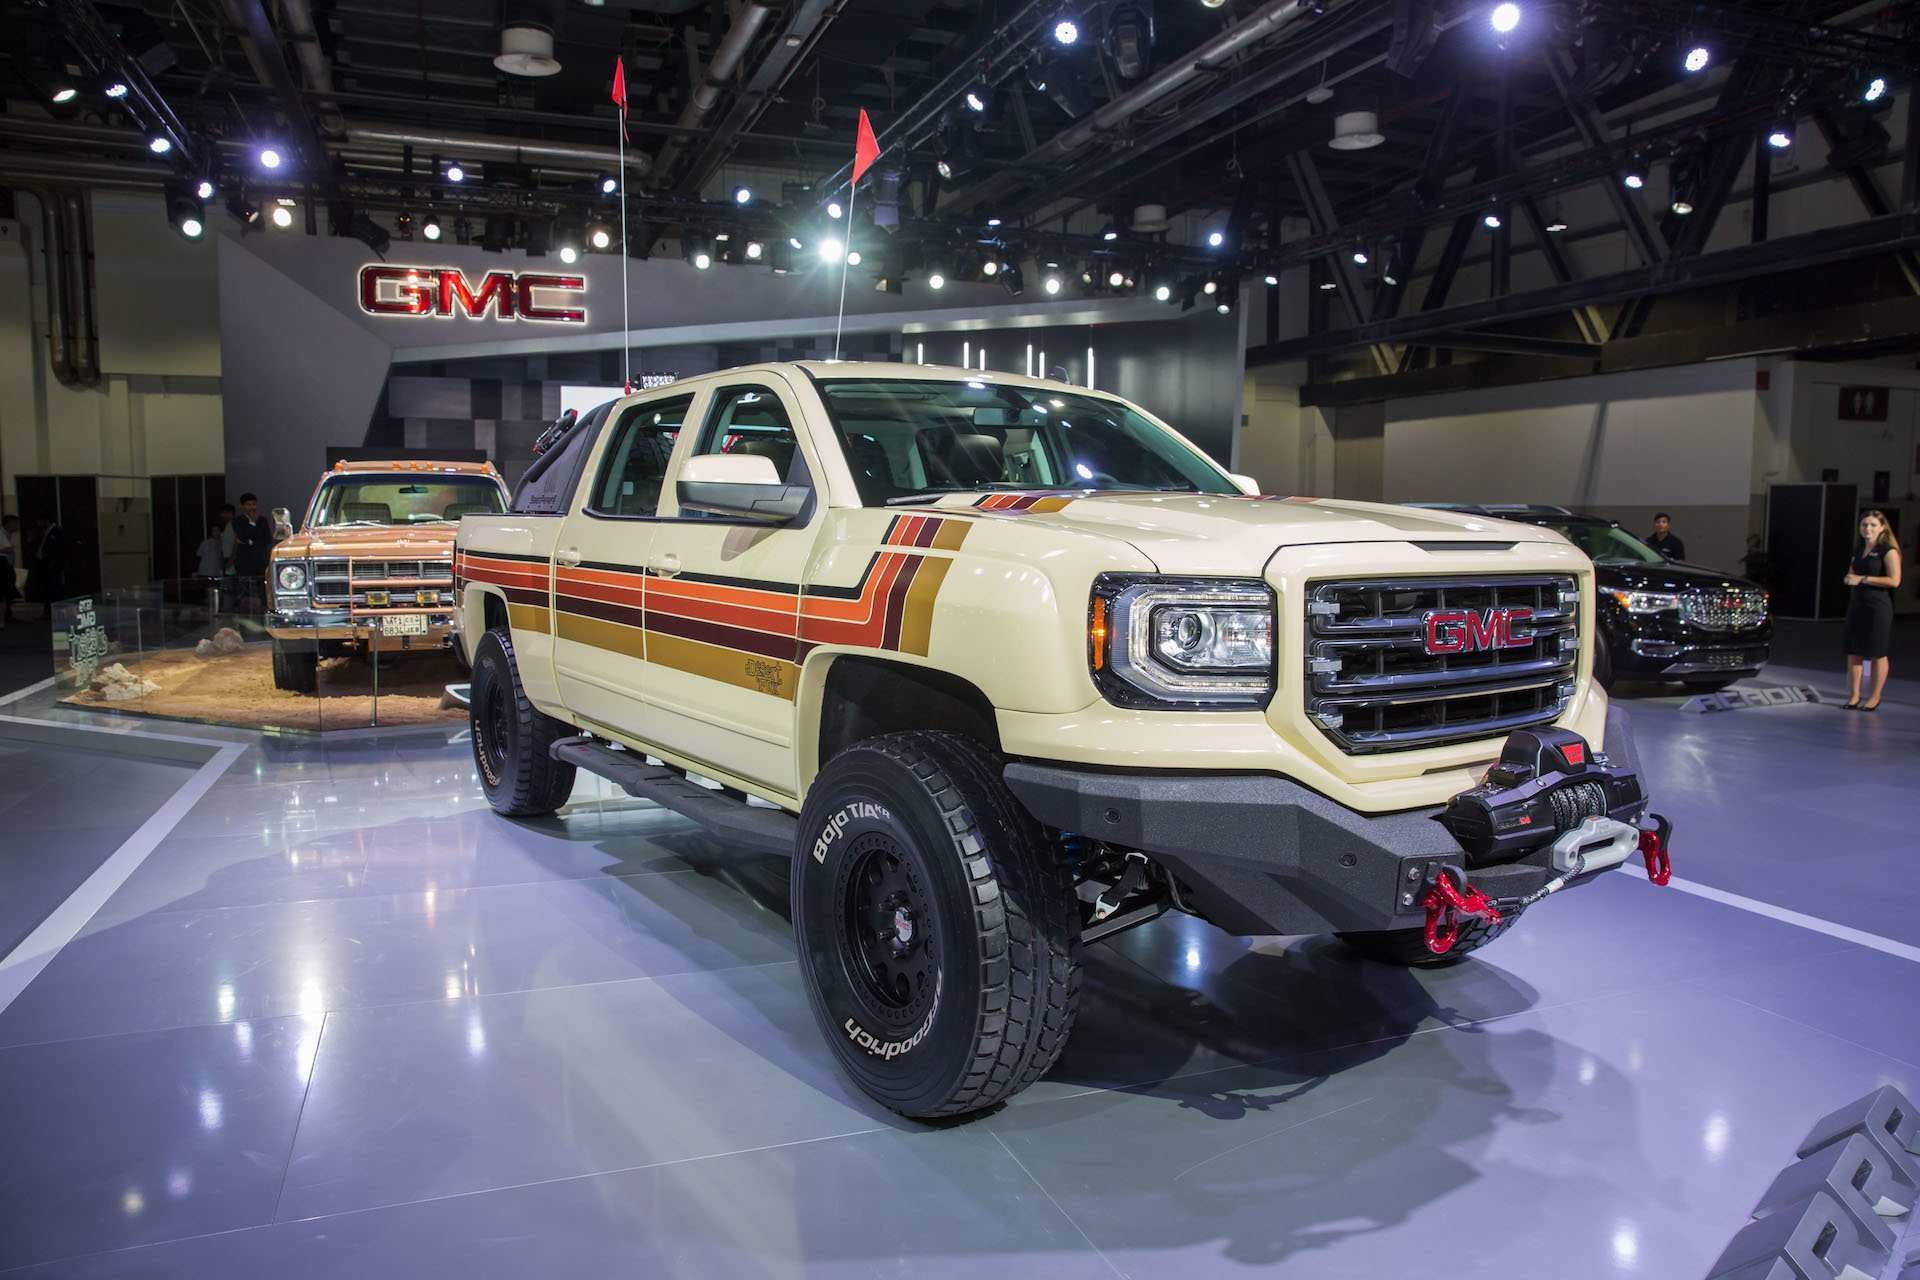 88 All New 2020 Gmc Sierra Concept Model by 2020 Gmc Sierra Concept